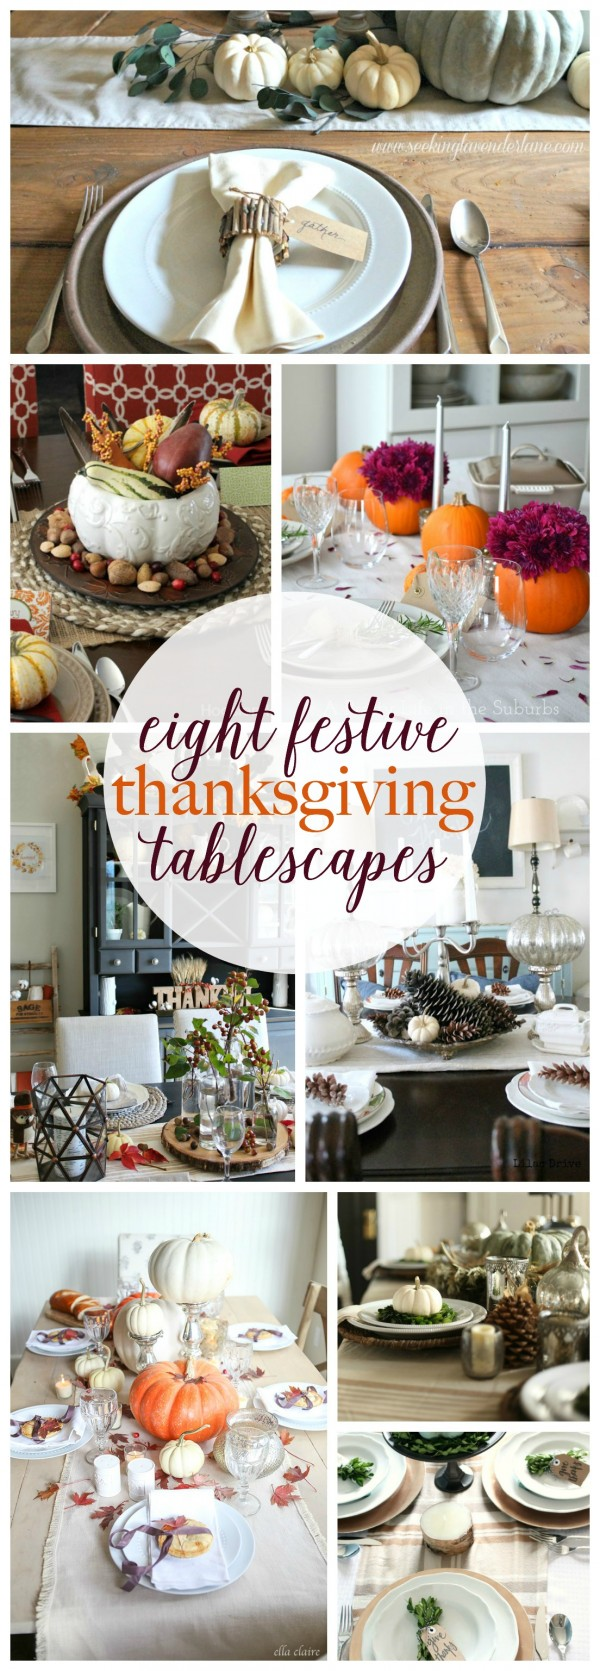 Treat your family to a gorgeous Thanksgiving table! Get some ideas with these 8 festive Thanksgiving tables capes. | Roundup via Work it Wednesday